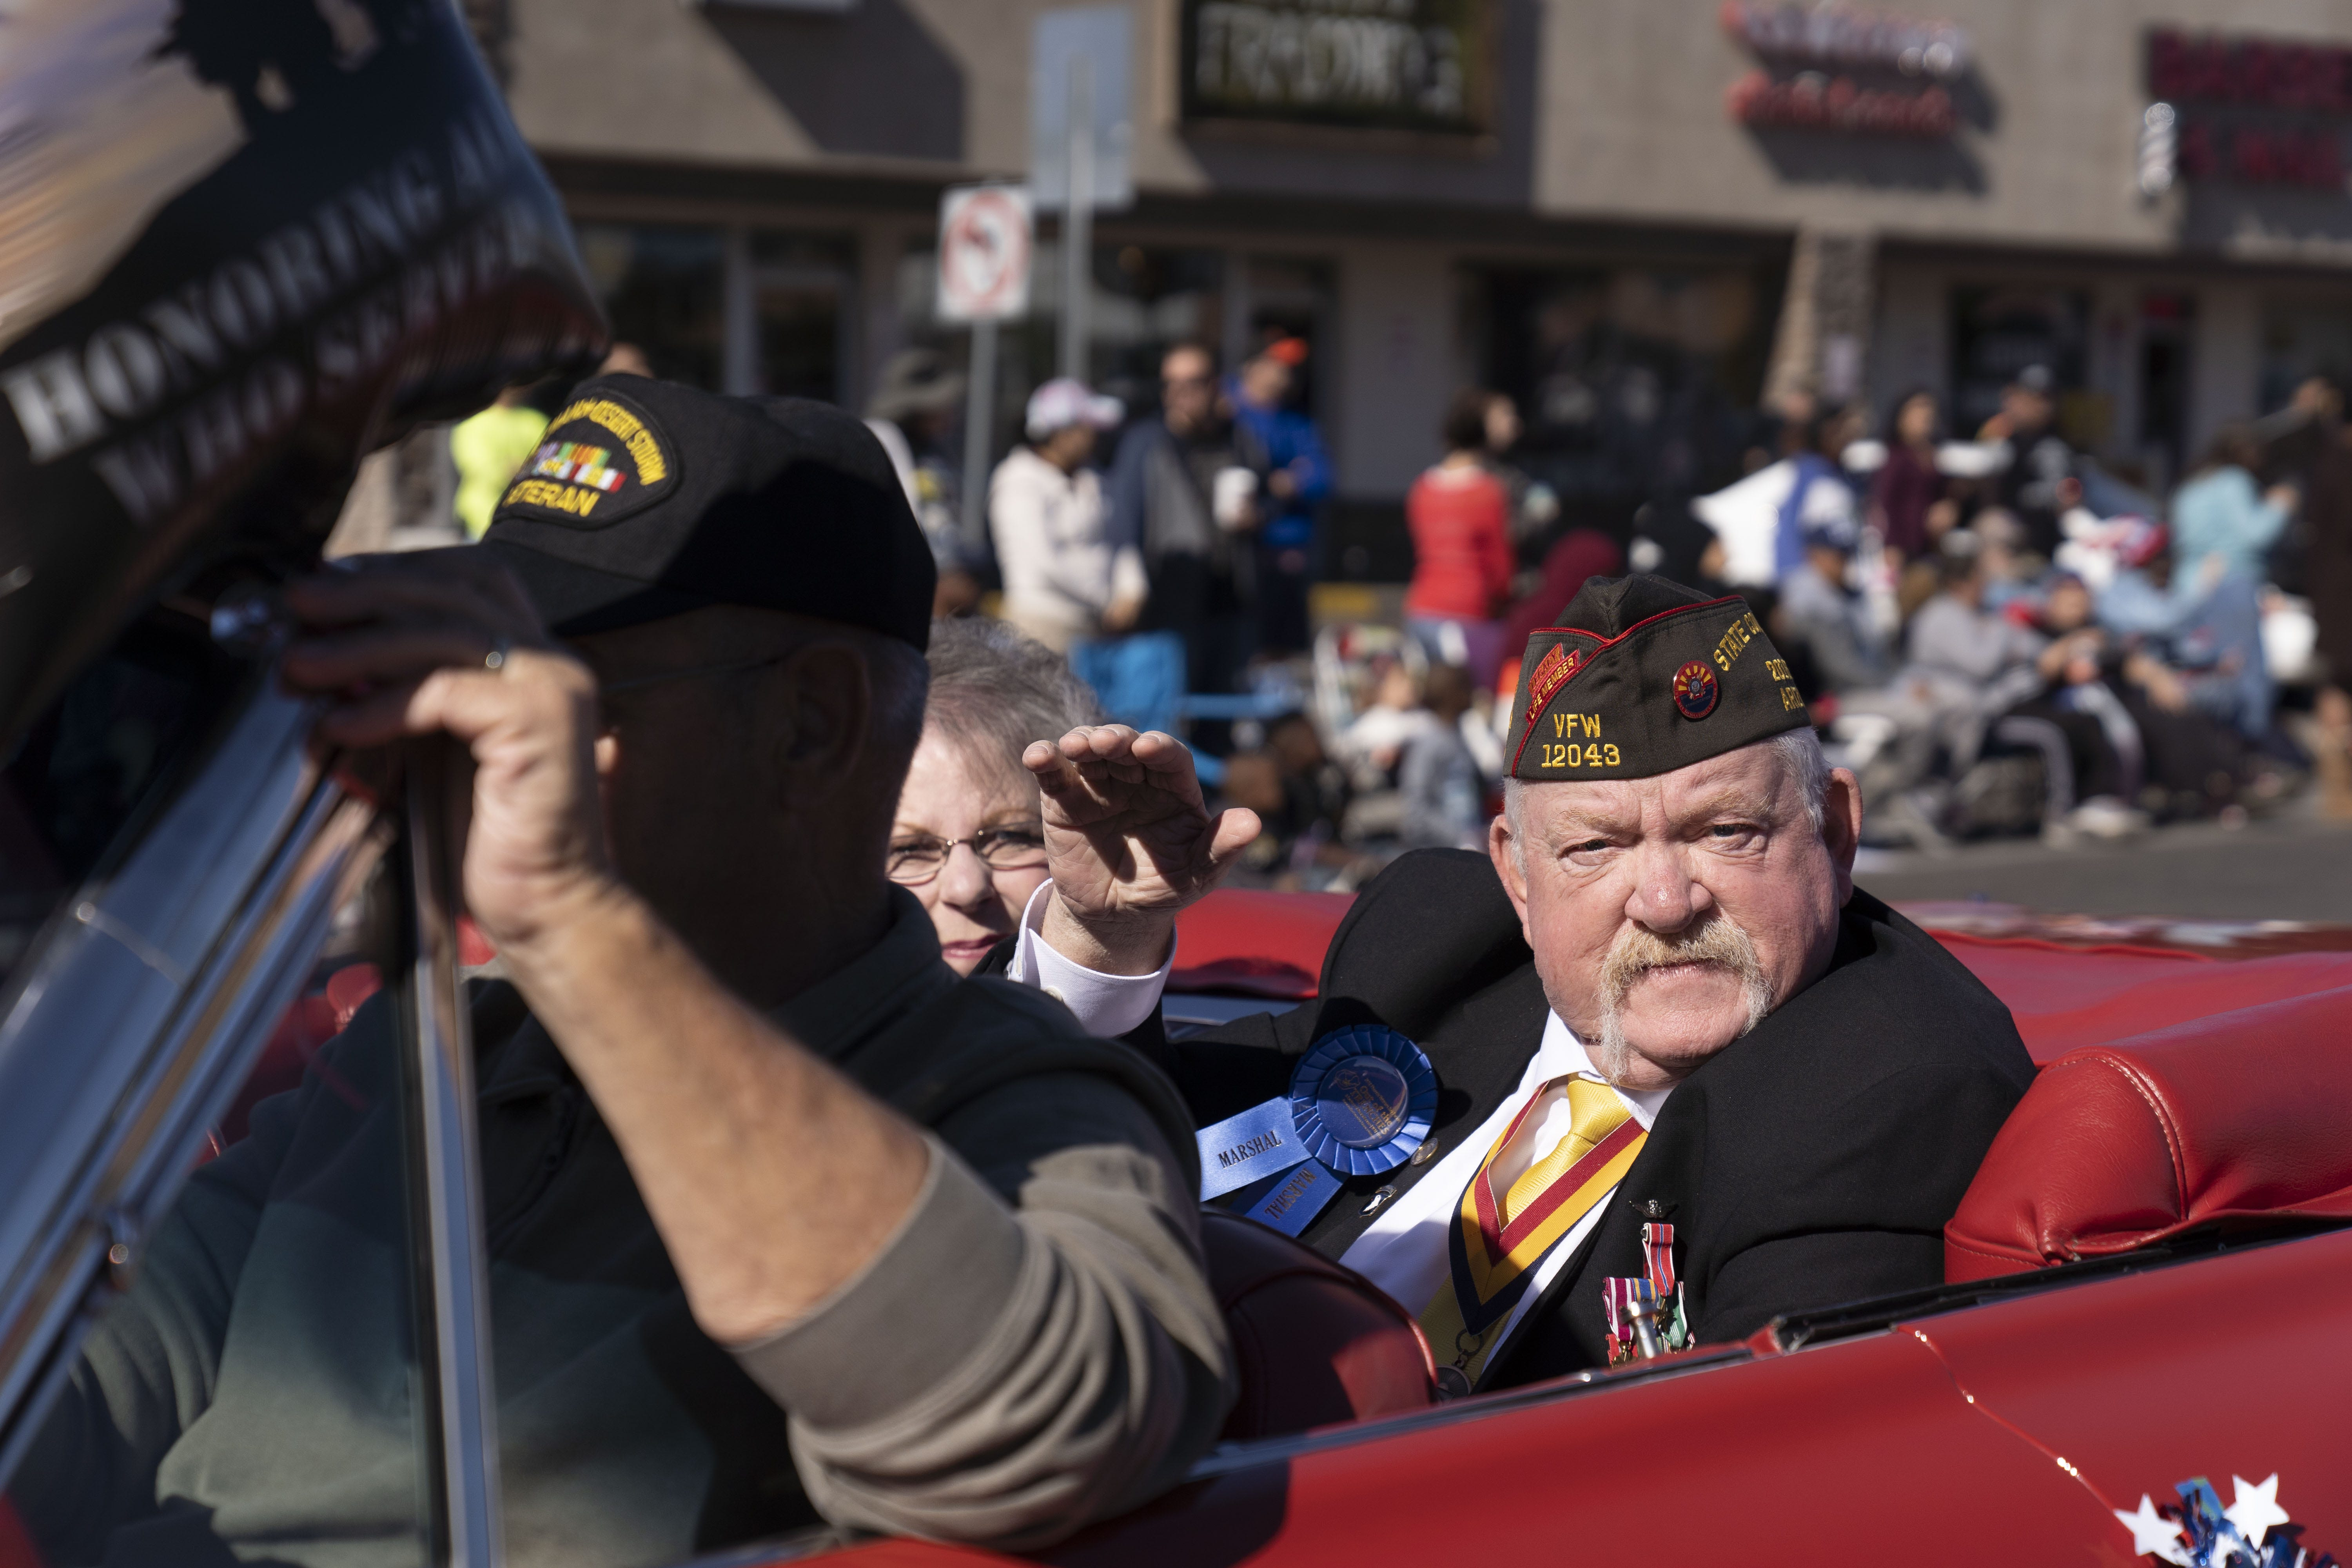 Thousands gather in Phoenix to honor military with annual Veterans Days Parade | AZ Central